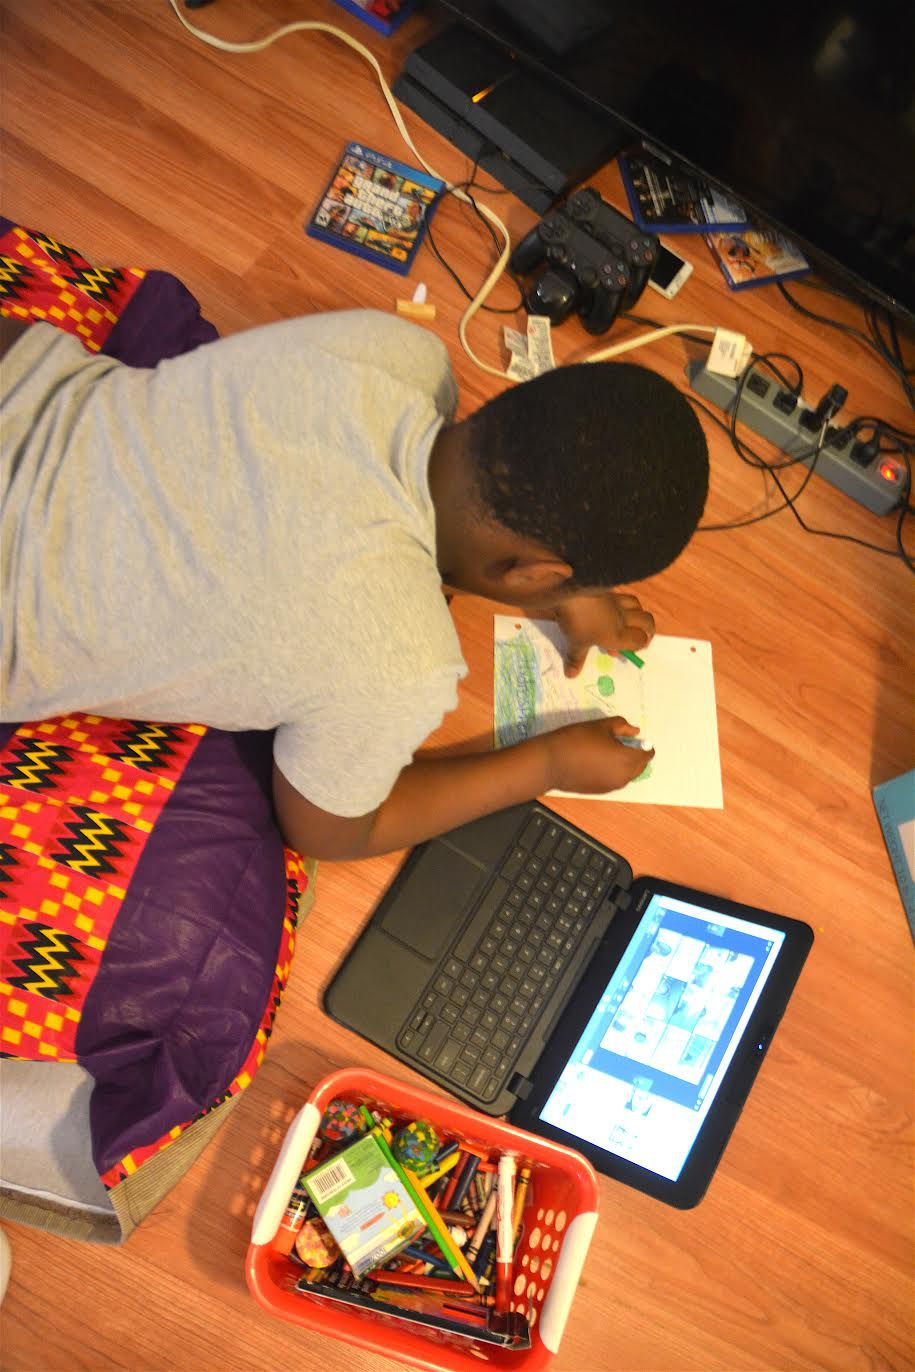 Aunullah Mohammed lies down on the pillow bed handmade by his mother, while attending class on his laptop.